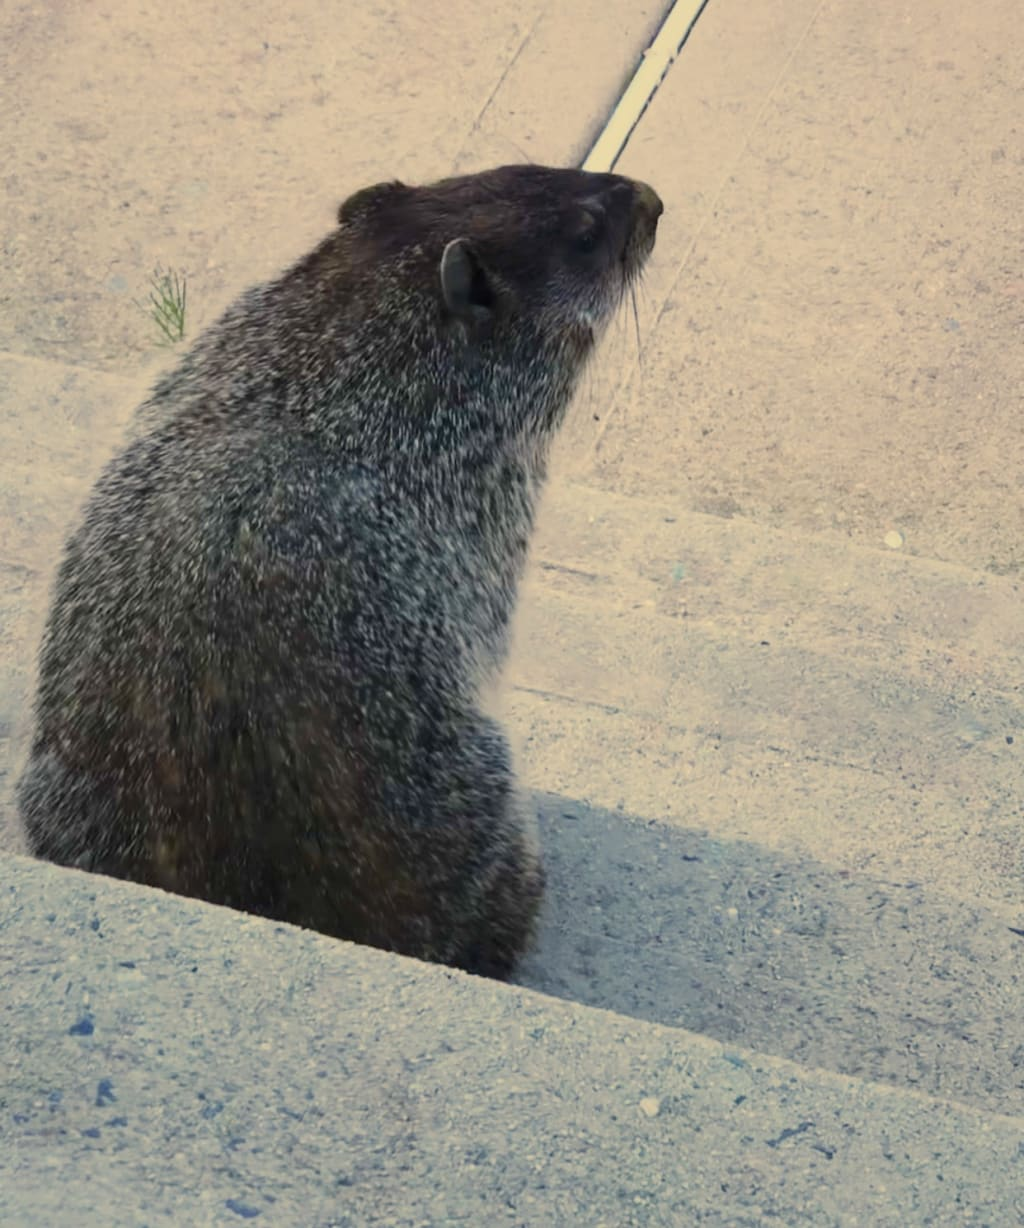 My Groundhog, Ciabatta